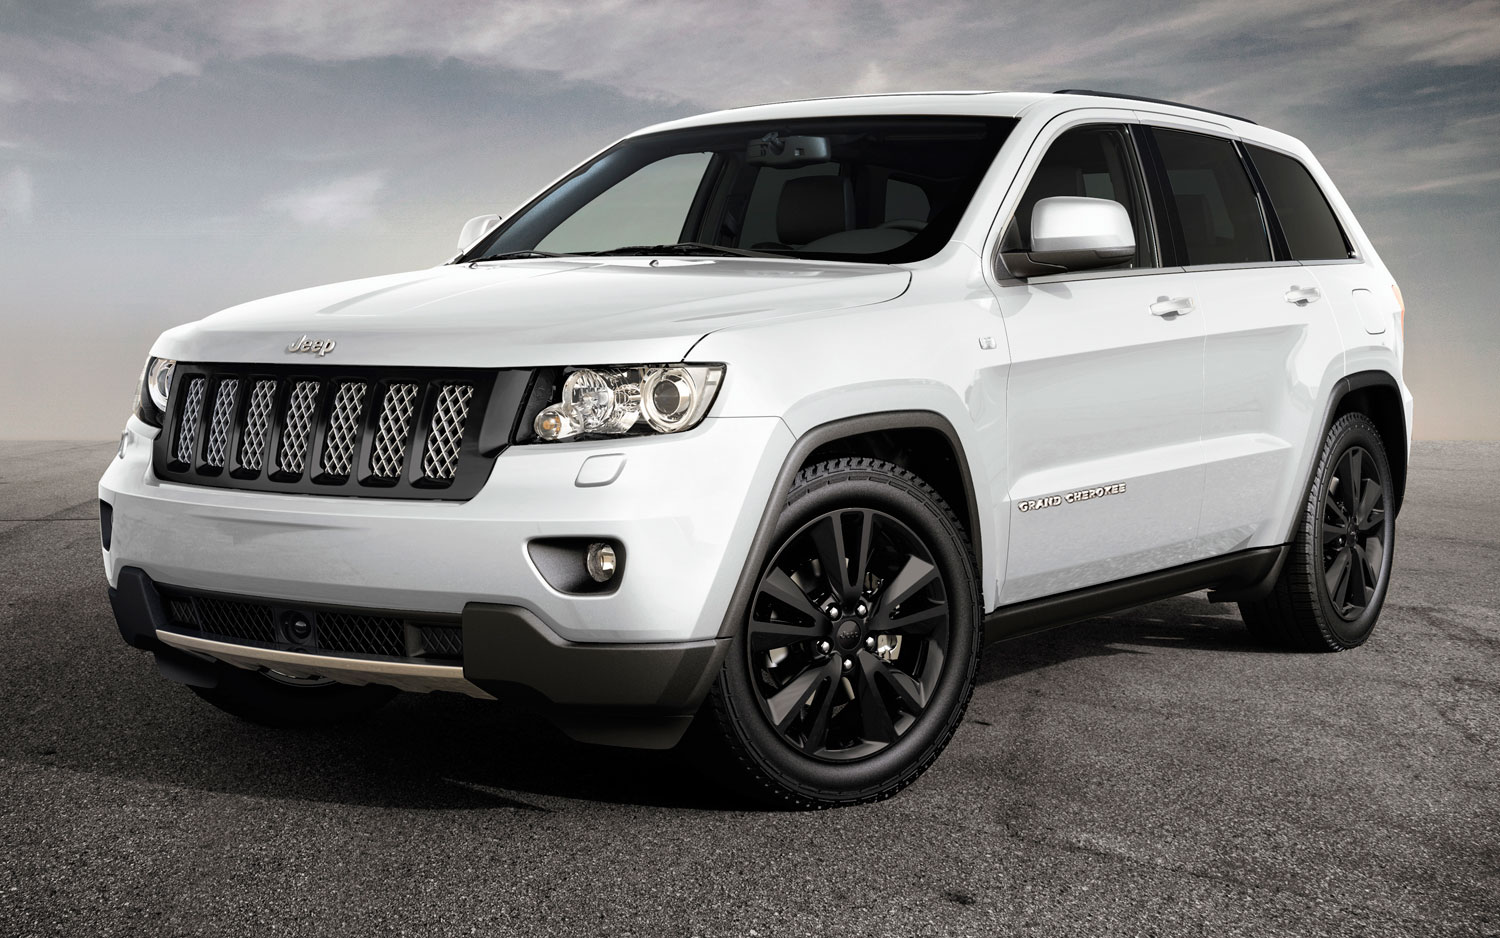 2012 jeep grand cherokee - information and photos - zombiedrive